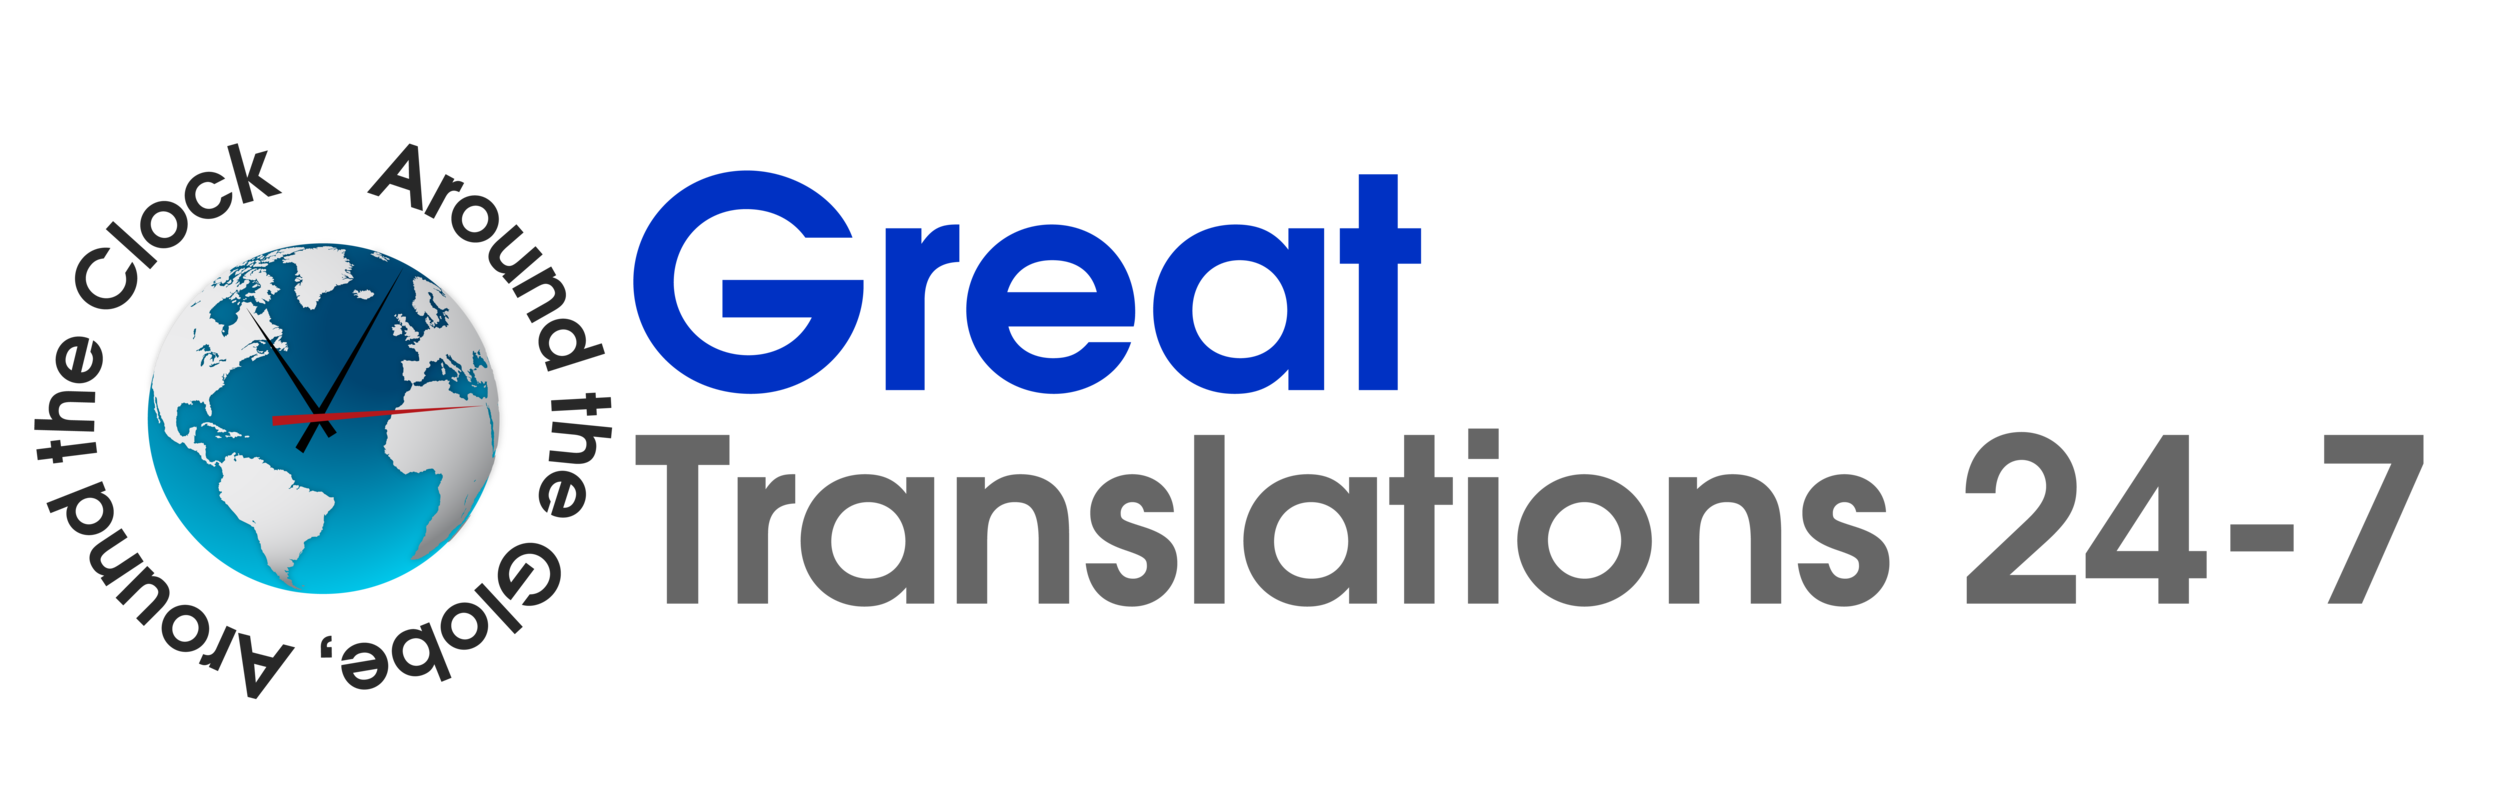 Great Translations - Logo v2-01.png